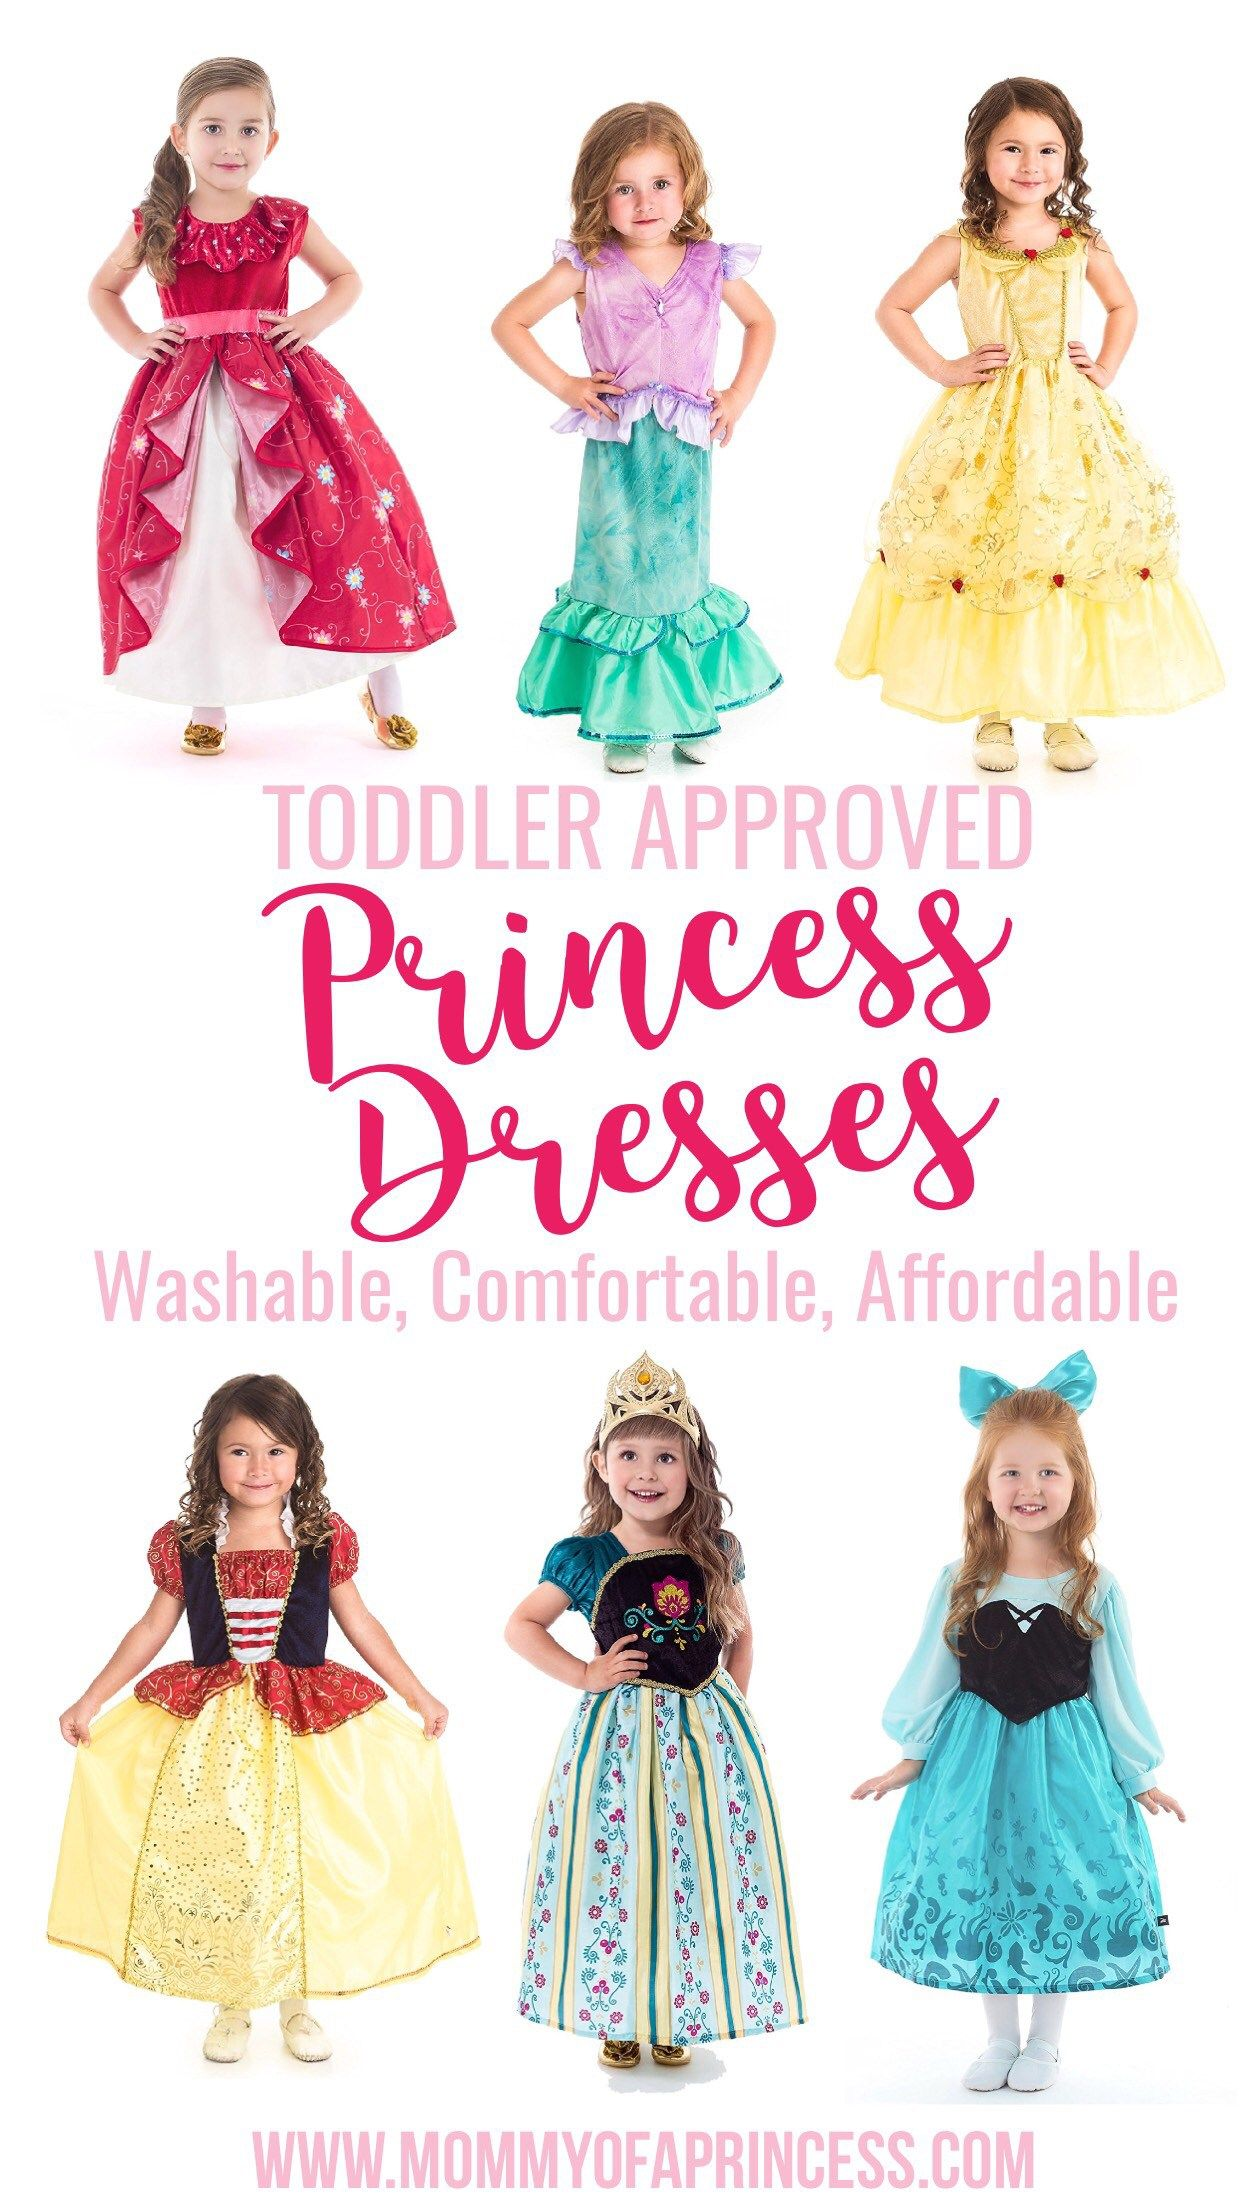 Best Princess Dress for Toddlers  Glitter Free Princess Dresses